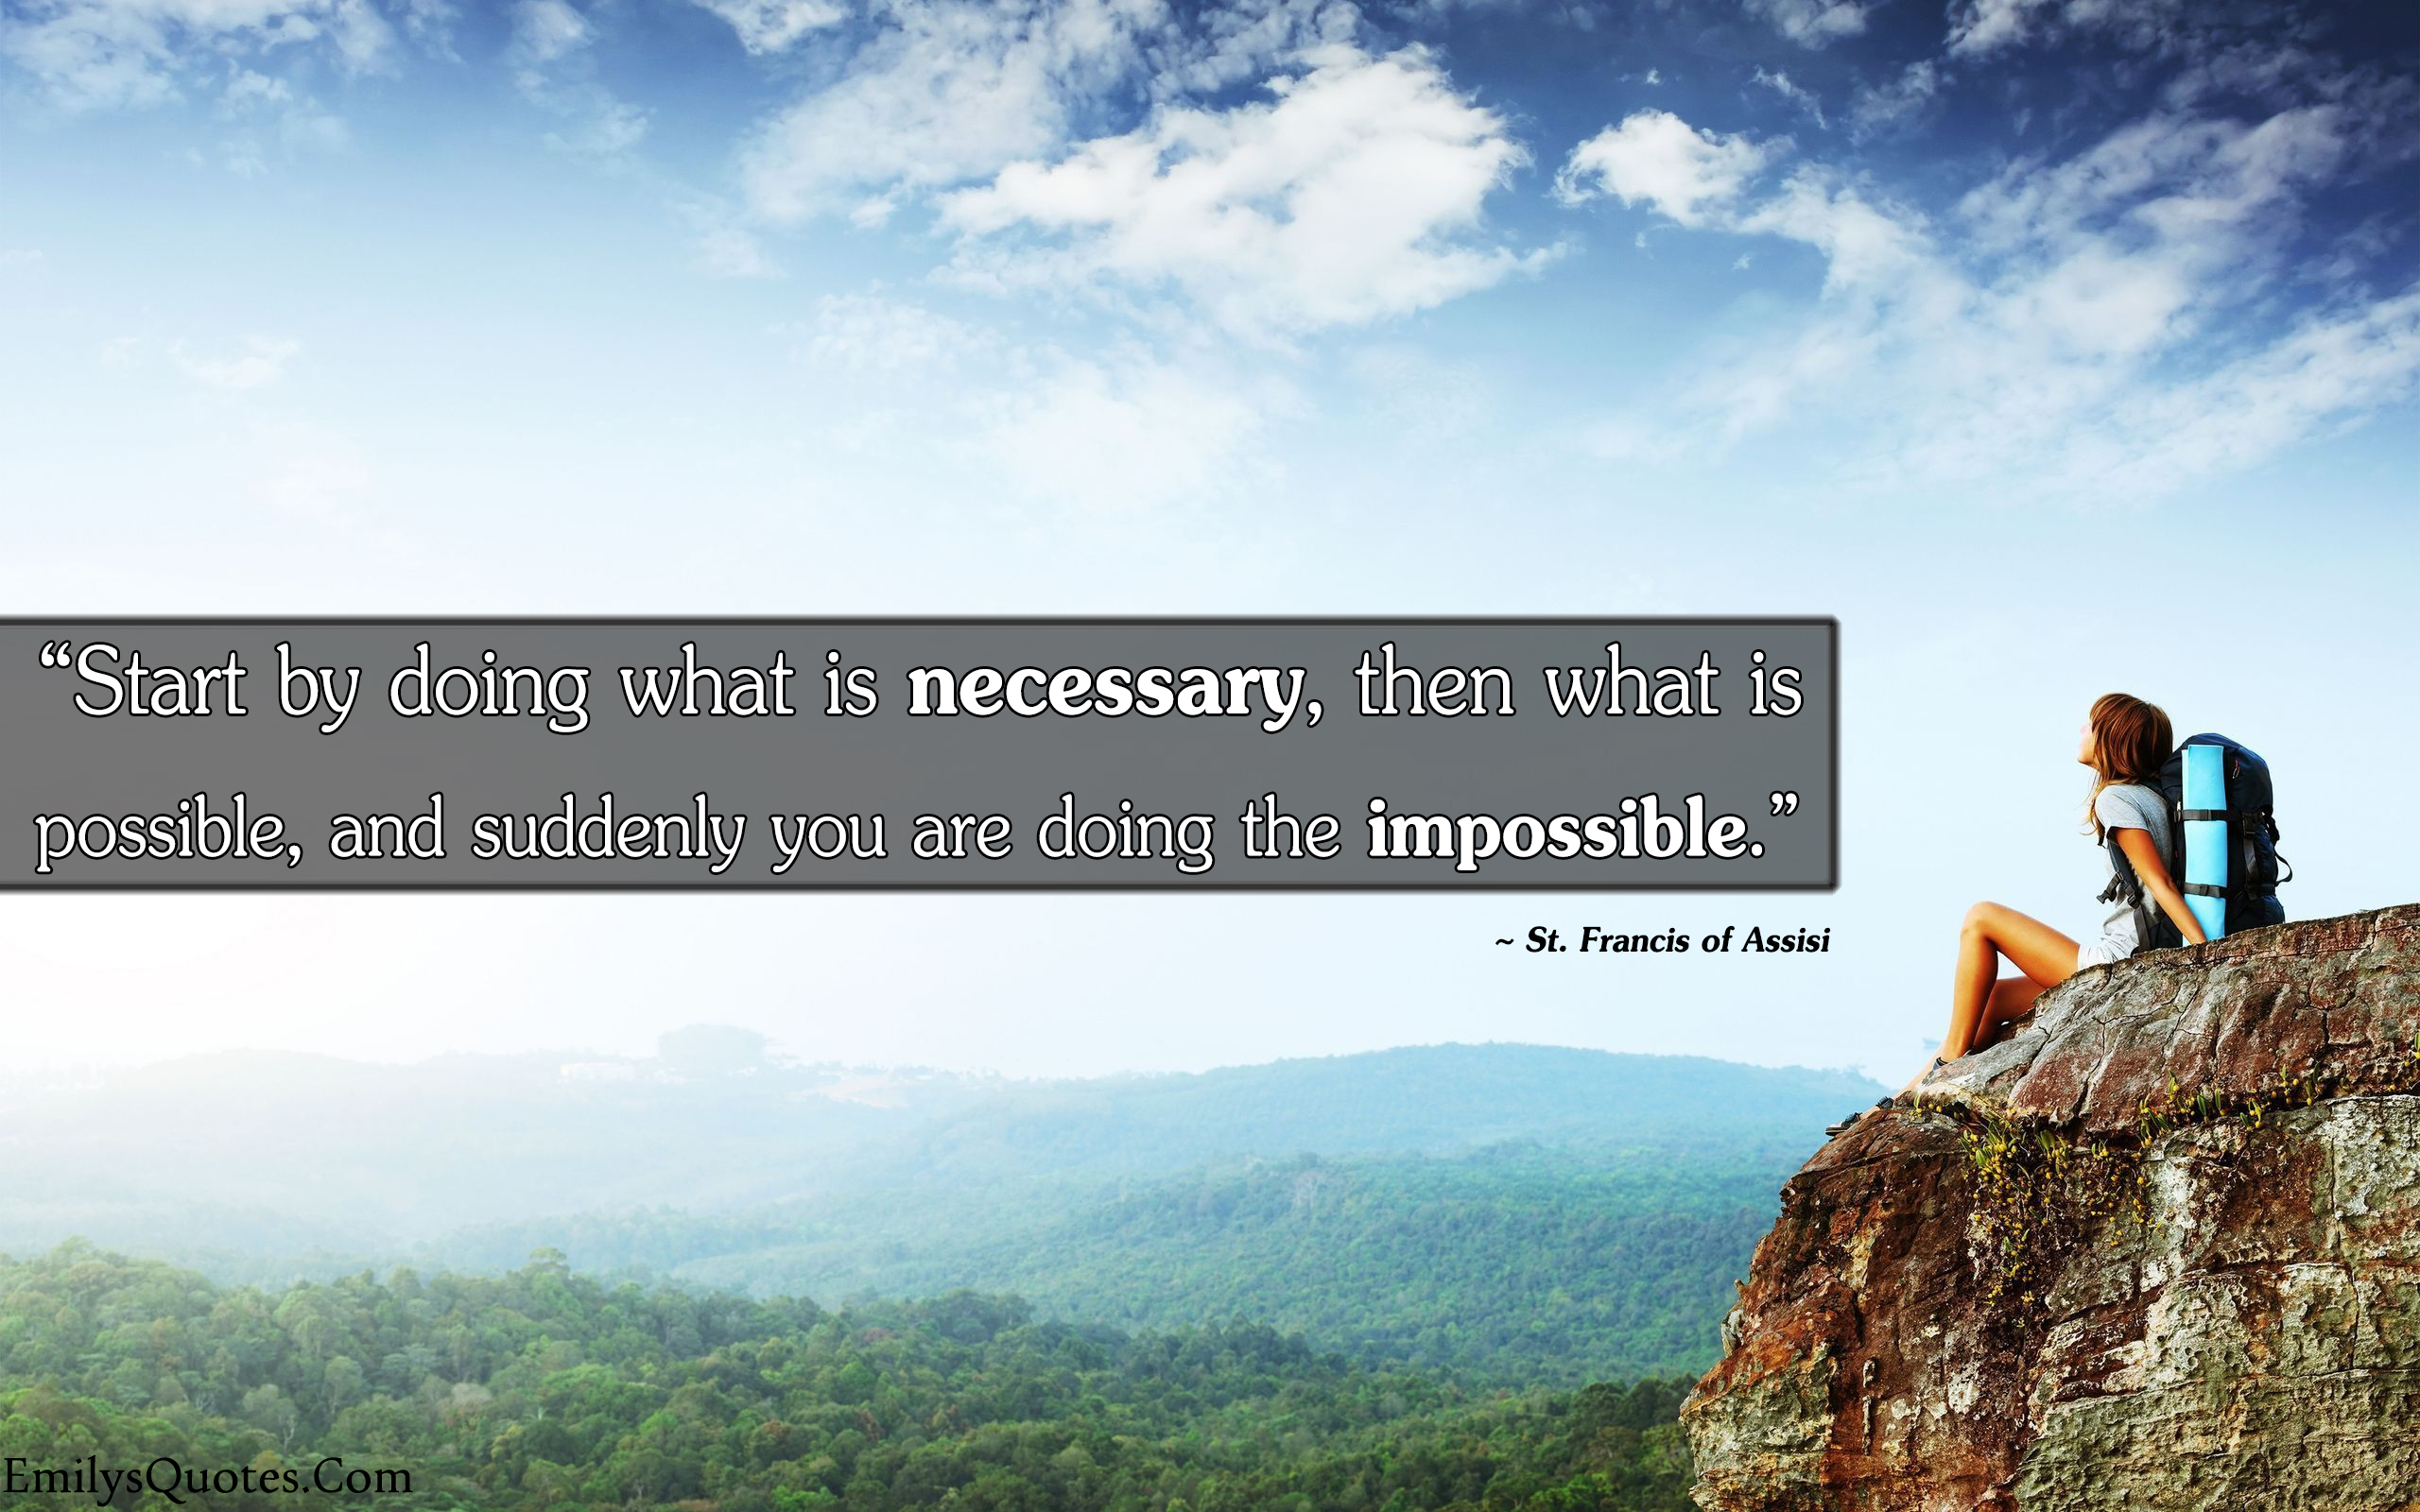 EmilysQuotes.Com - necessary, possible, impossible,  St. Francis of Assisi, inspirational